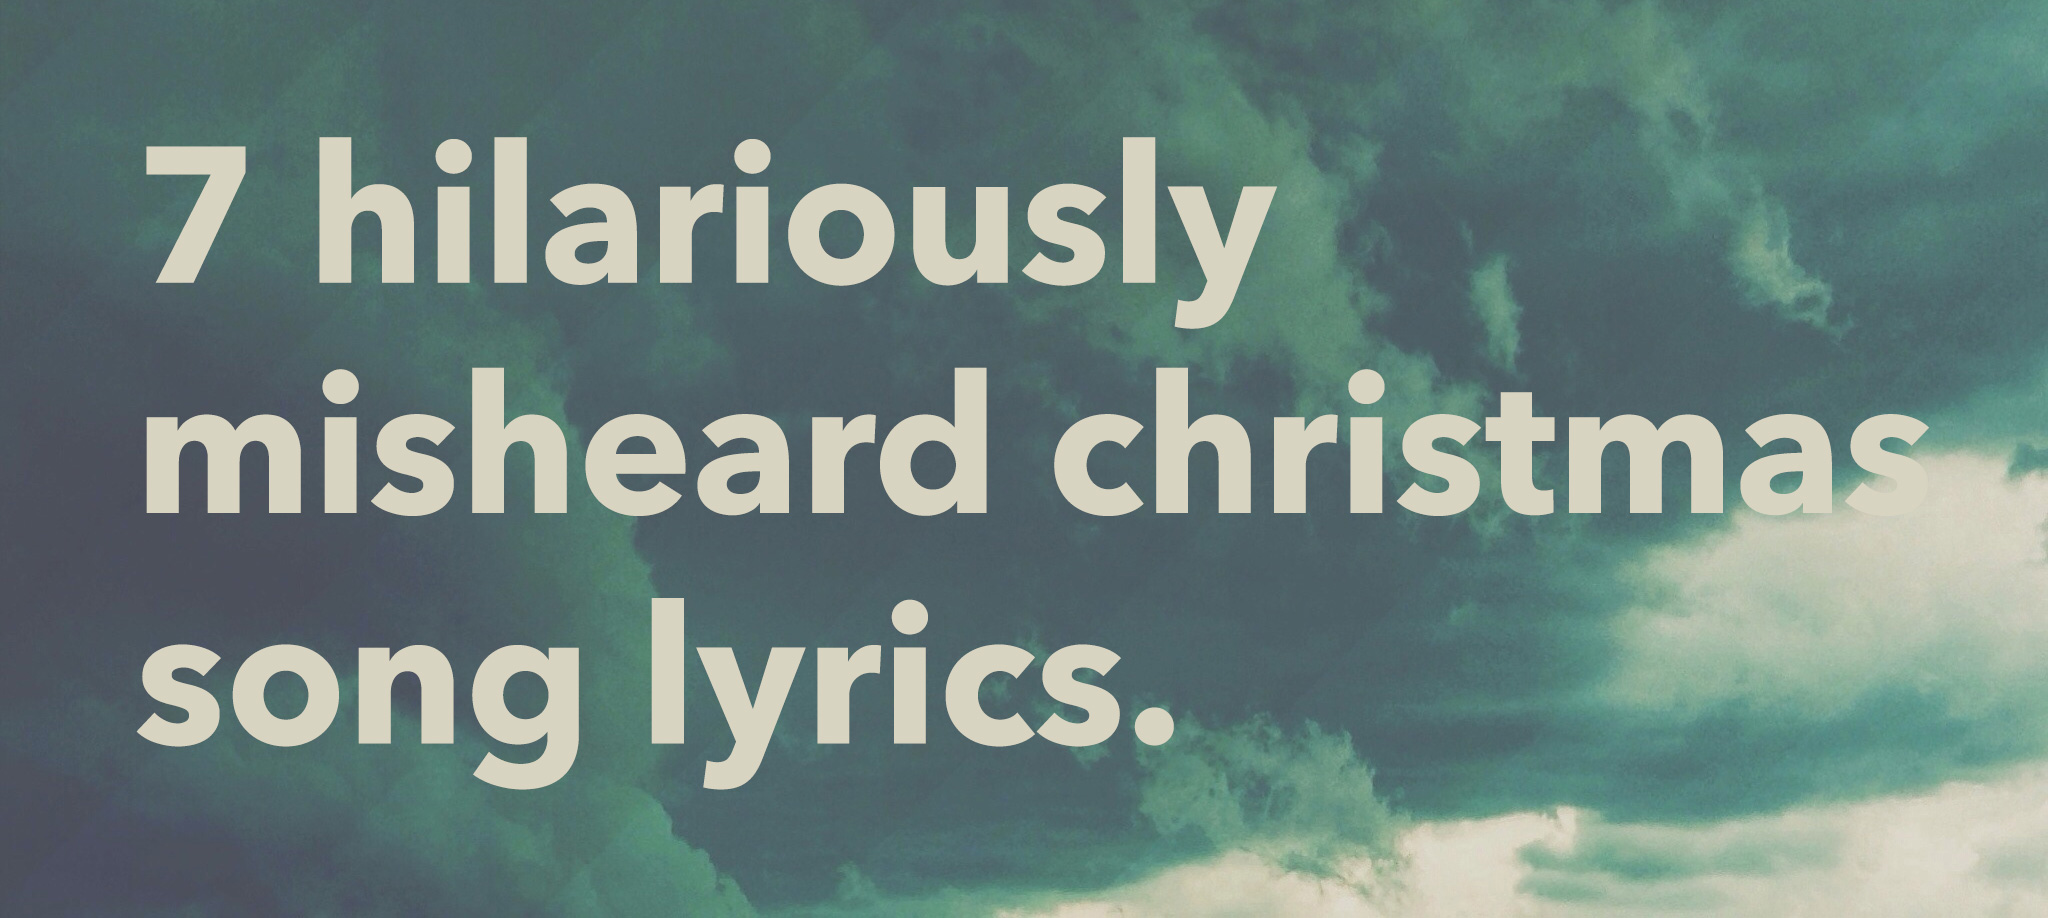 7-hilariously-misheard-christmas-song-lyrics